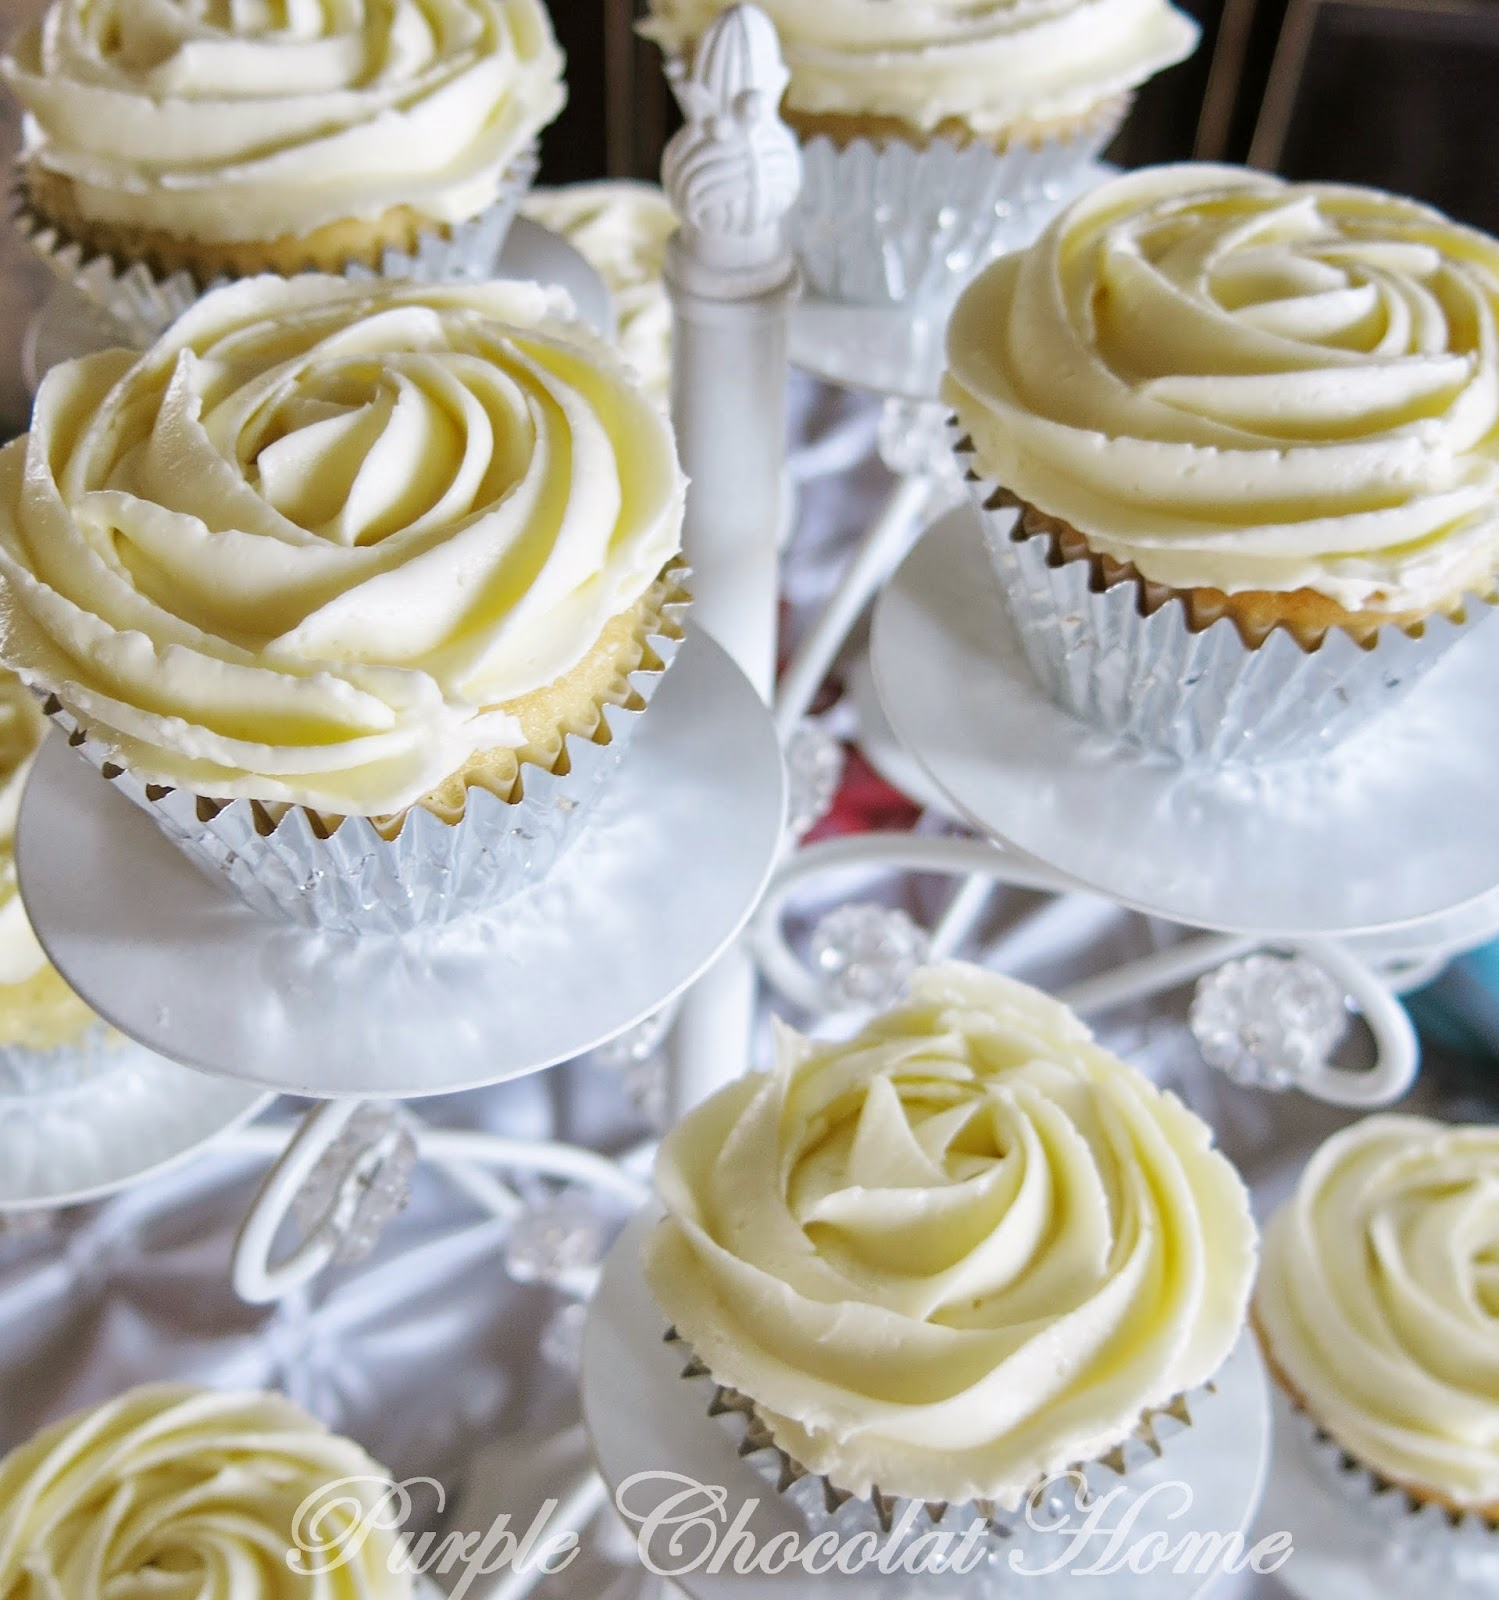 Rose+cupcakes+with+Swiss+Buttercream.JPG